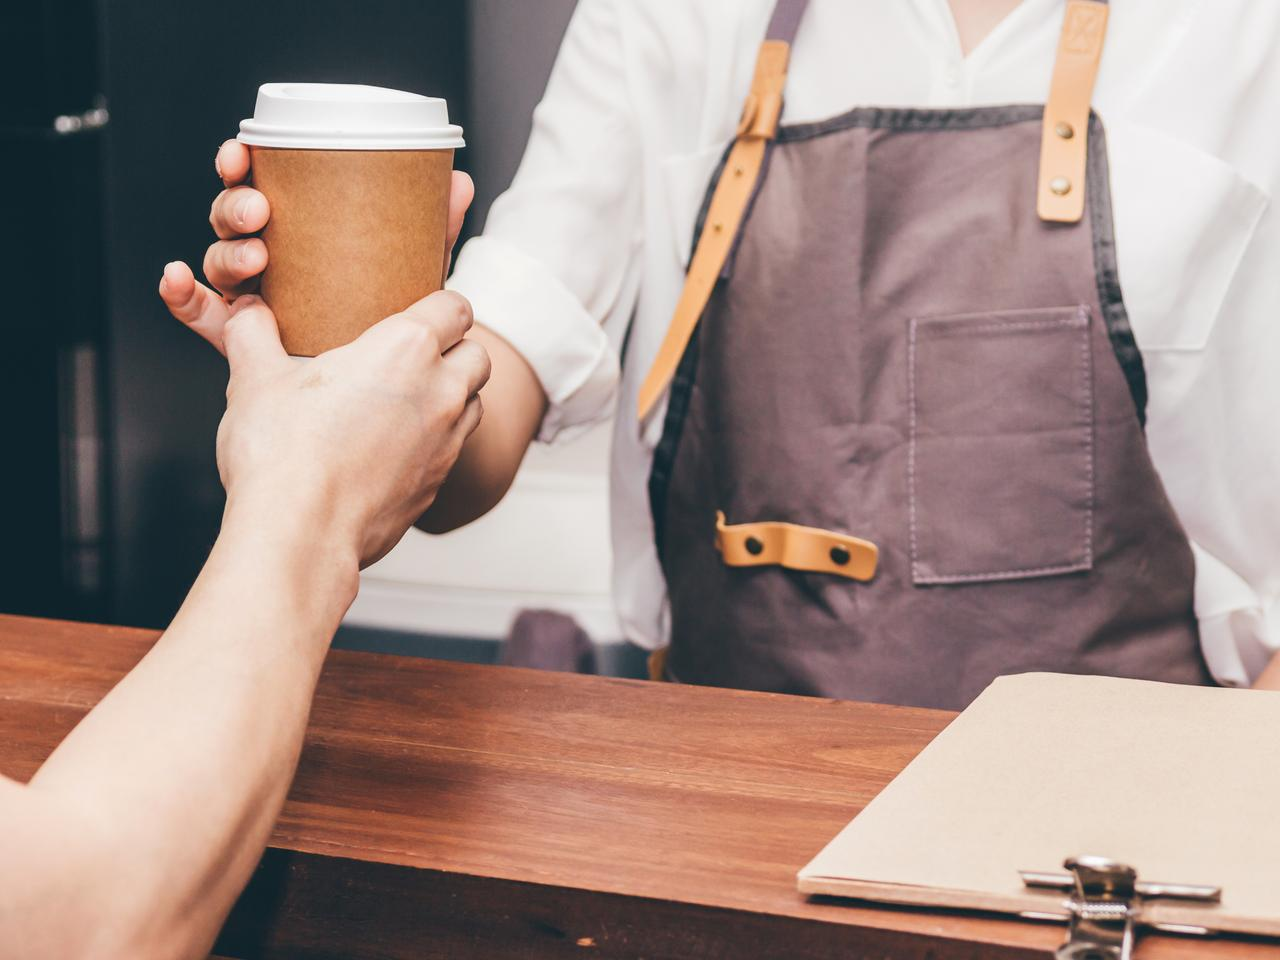 Woman barista giving coffee cup to customer at cafe